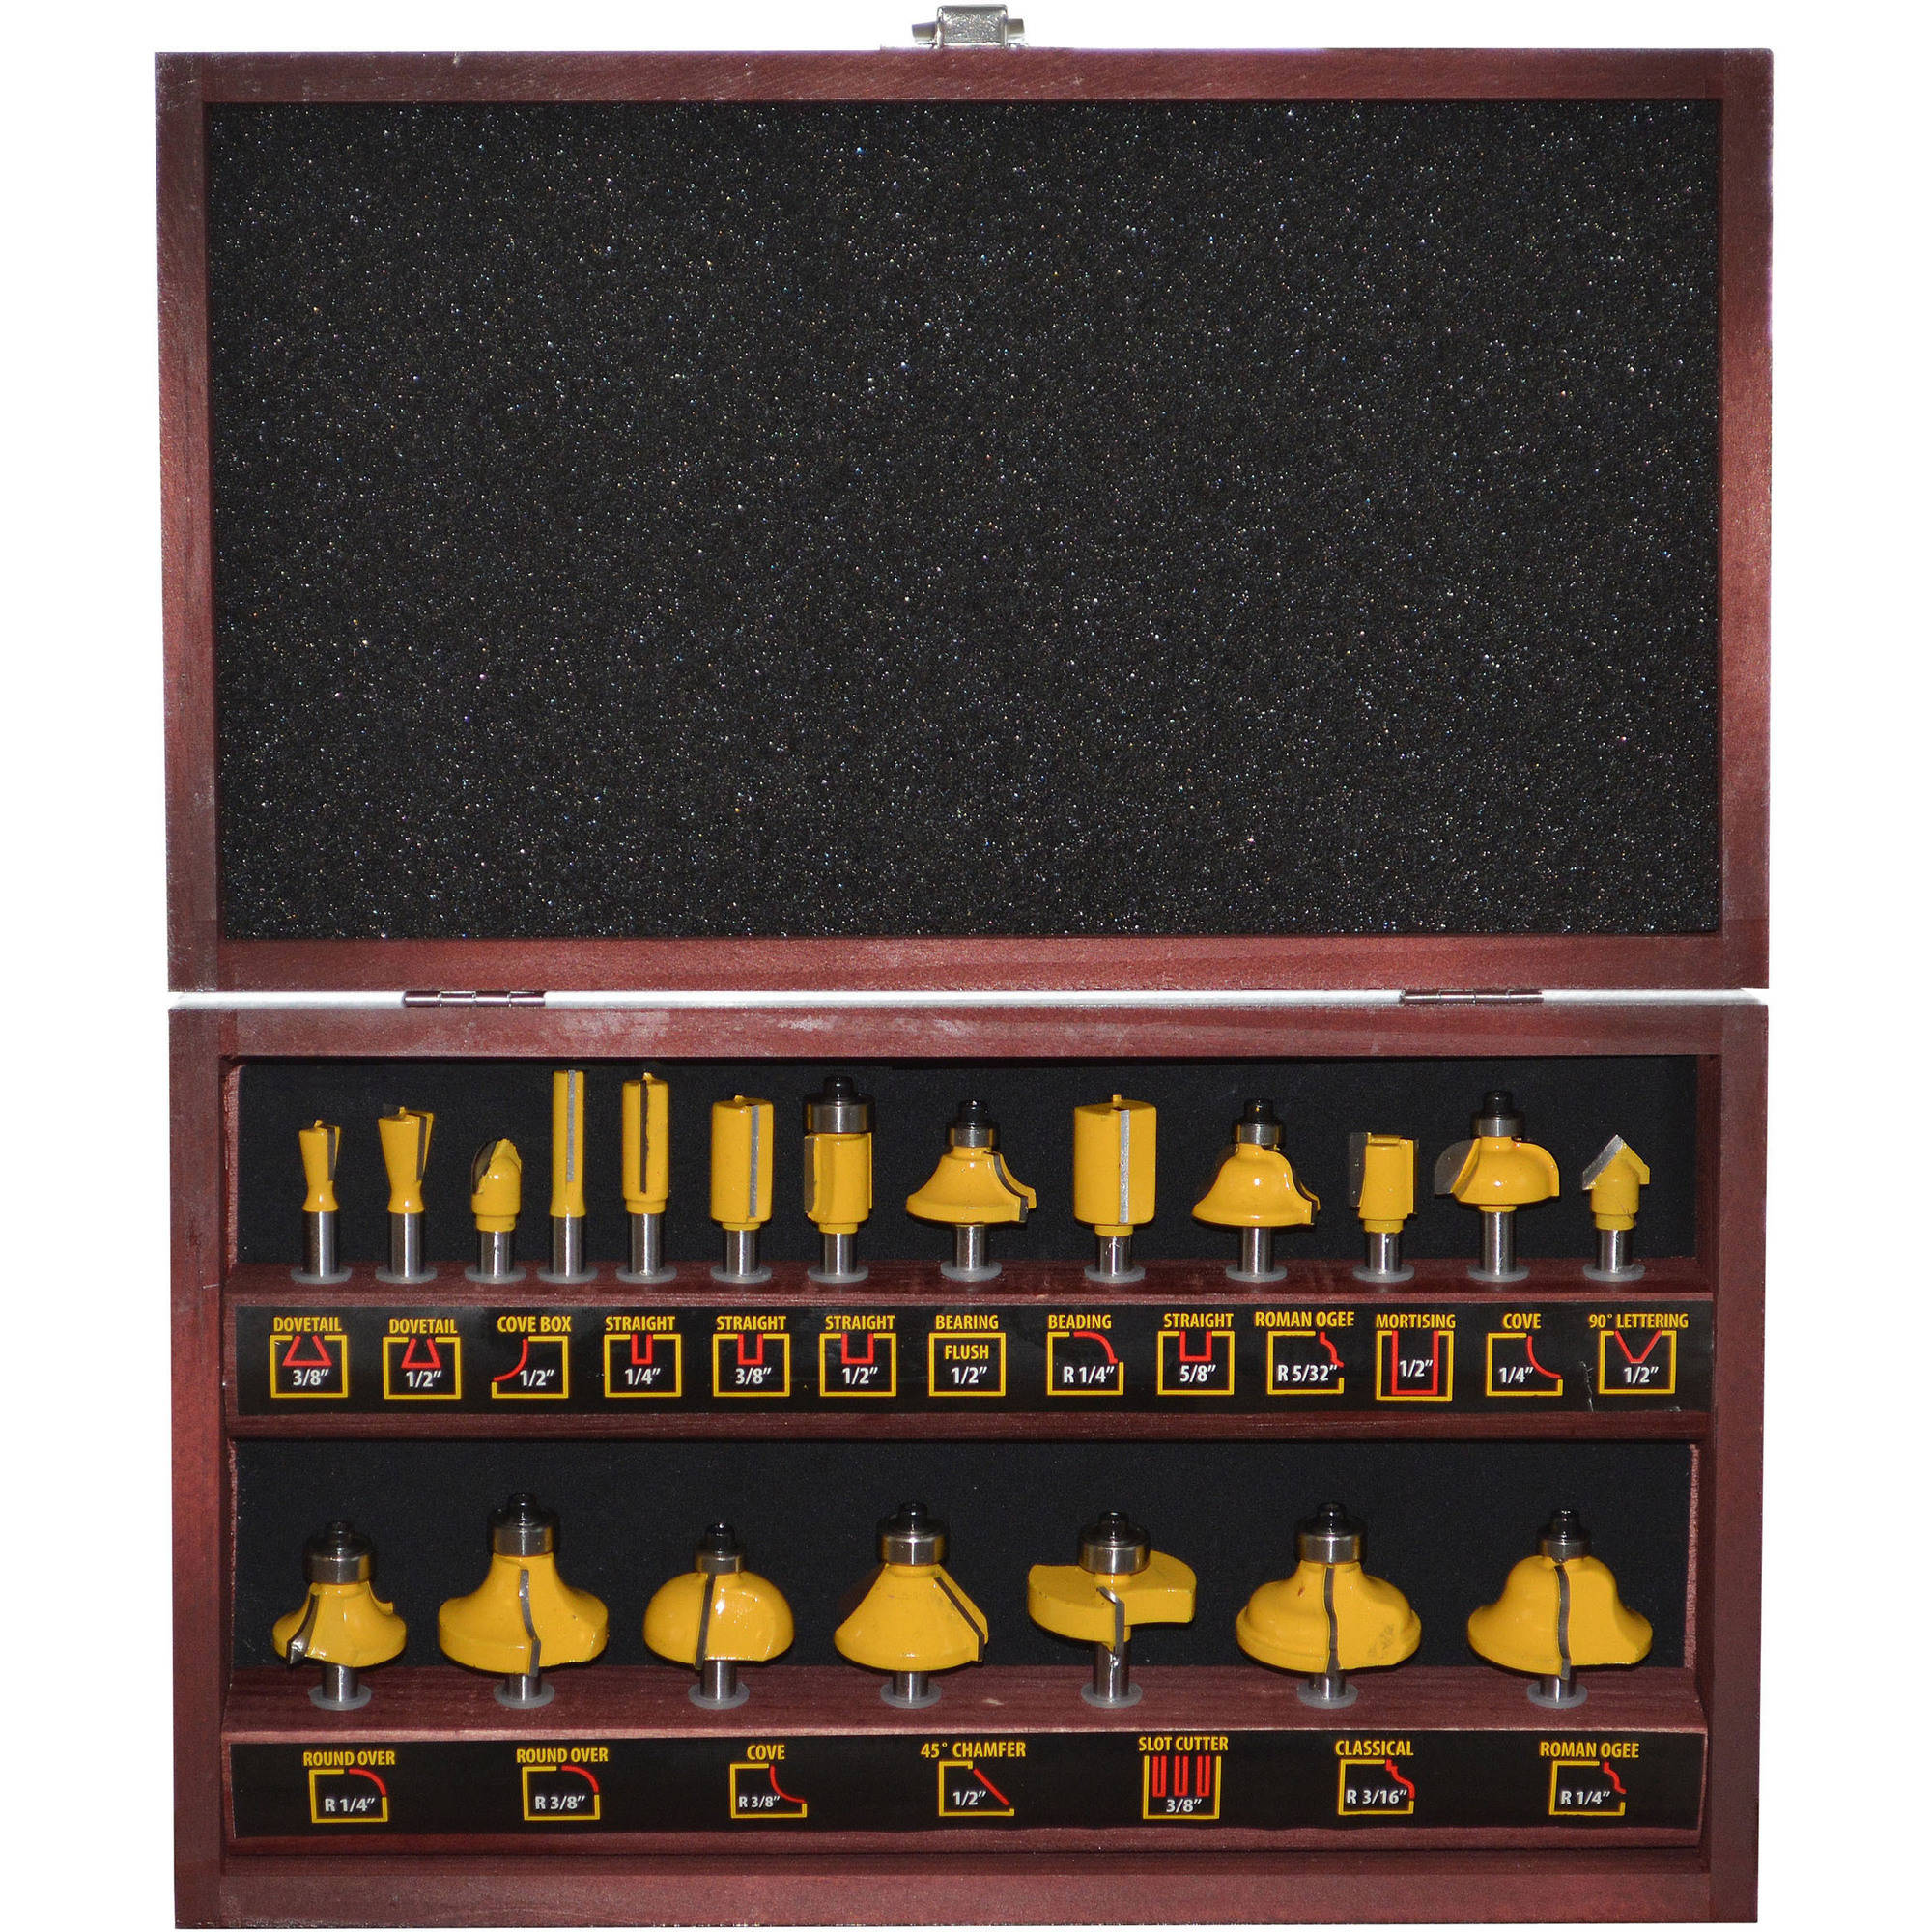 Pro-Series 20-Piece Router Bit Set in Wood Box